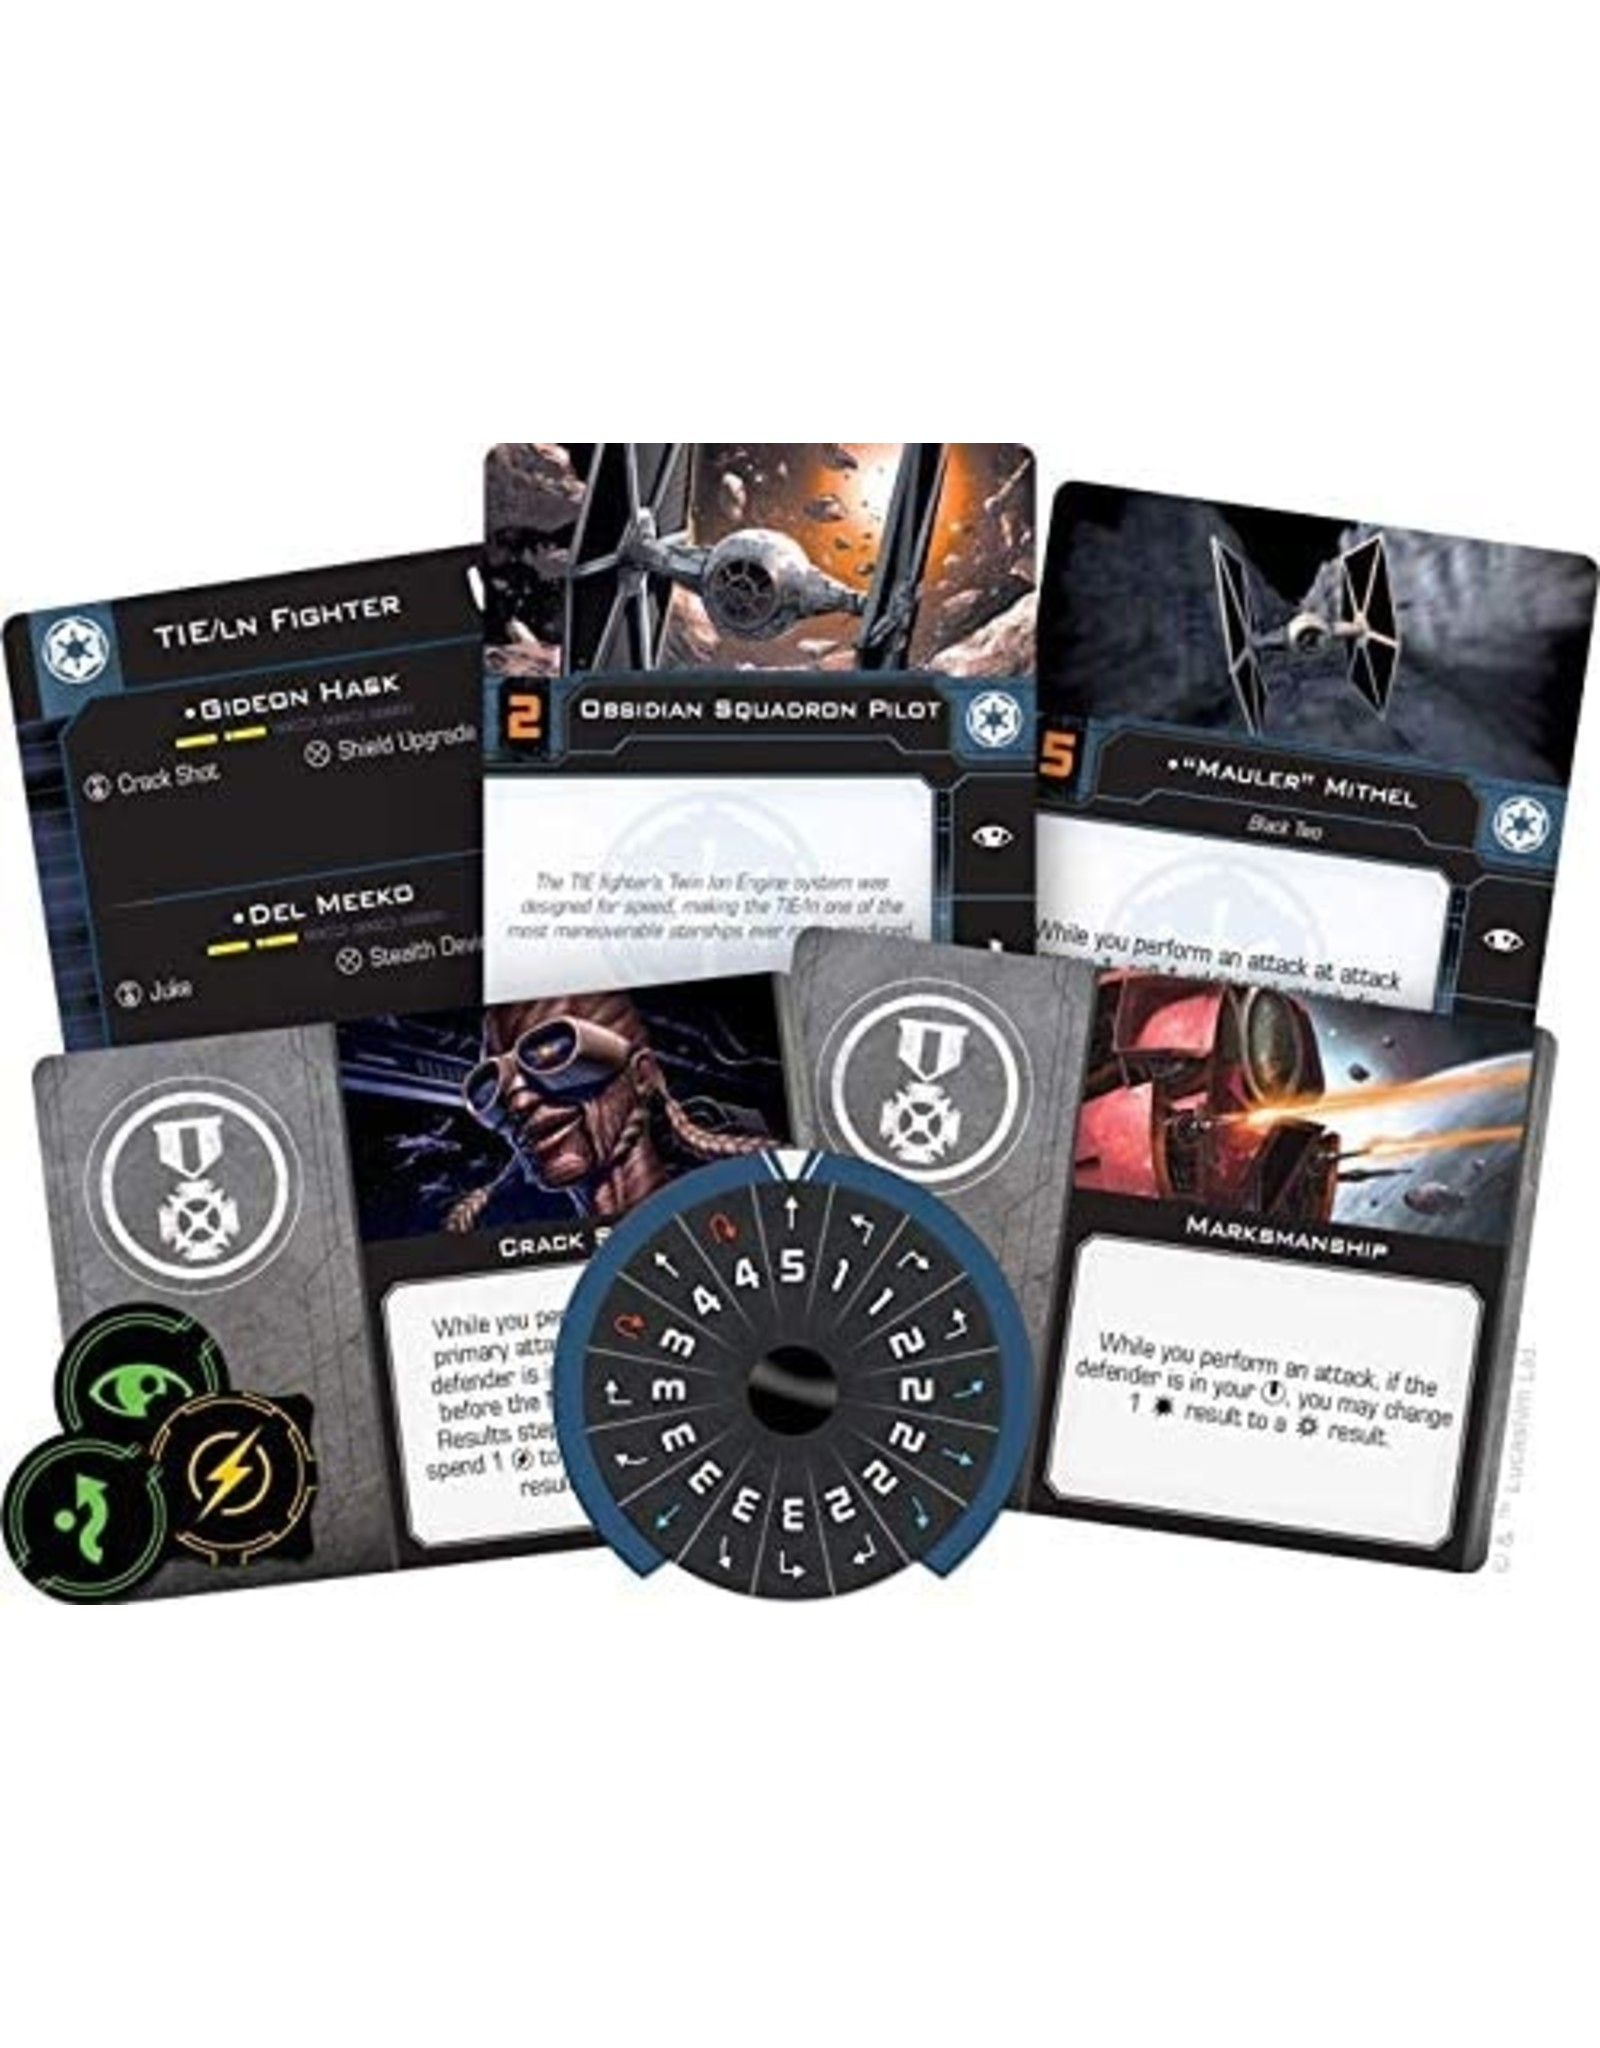 Star Wars X-Wing: 2nd Edition - TIE/LN Fighter Expansion Pack